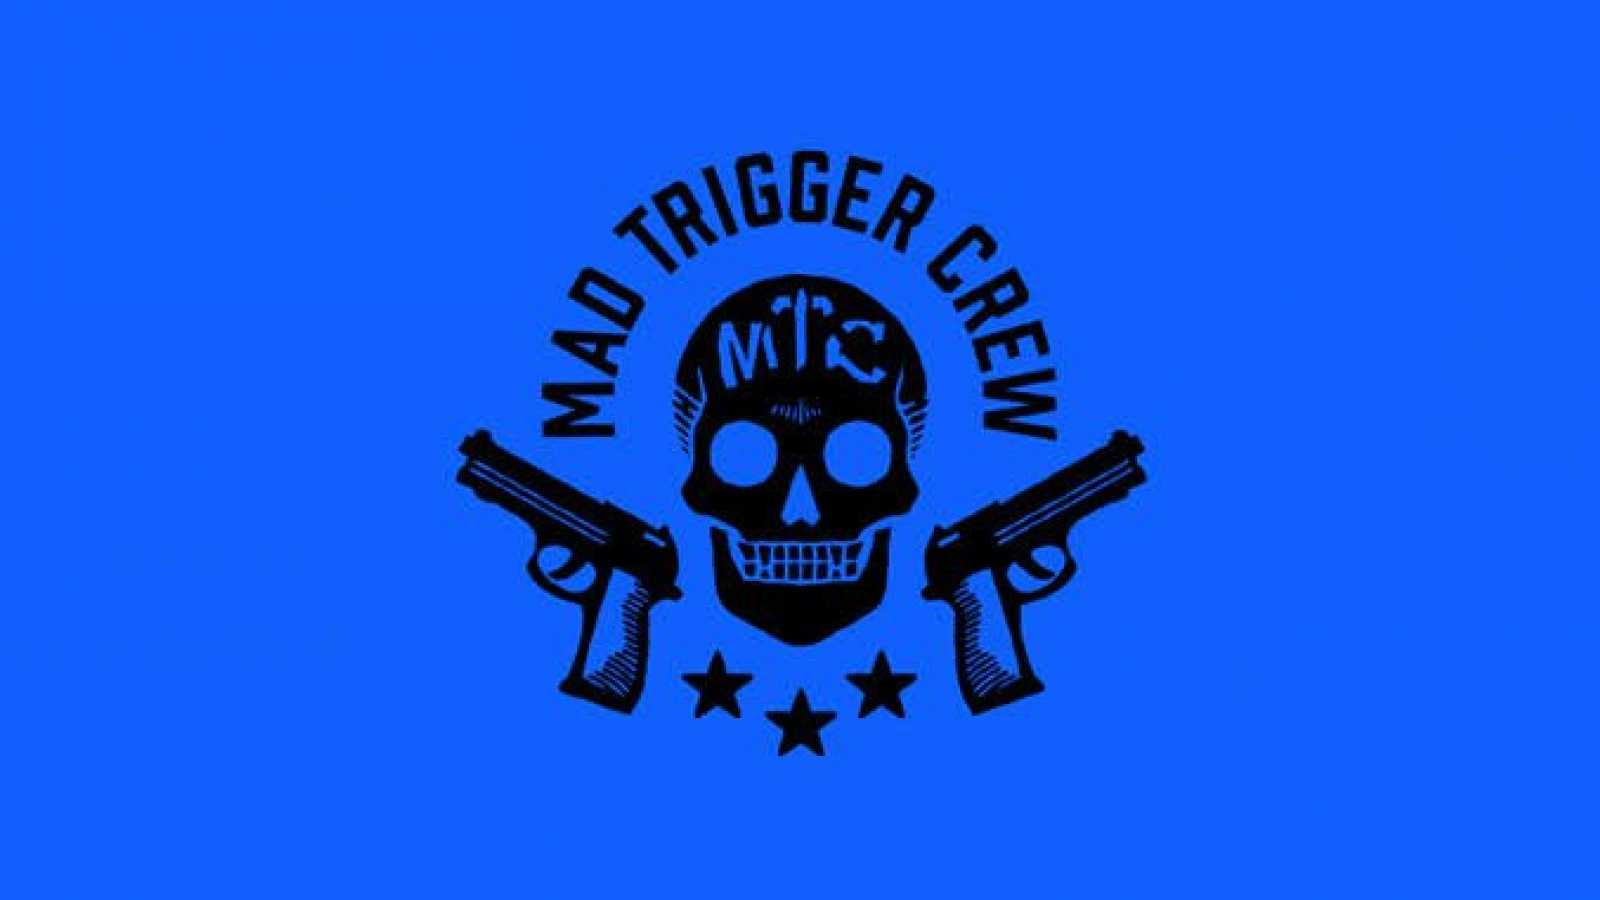 MAD TRIGGER CREW © EVIL LINE RECORDS. All rights reserved.